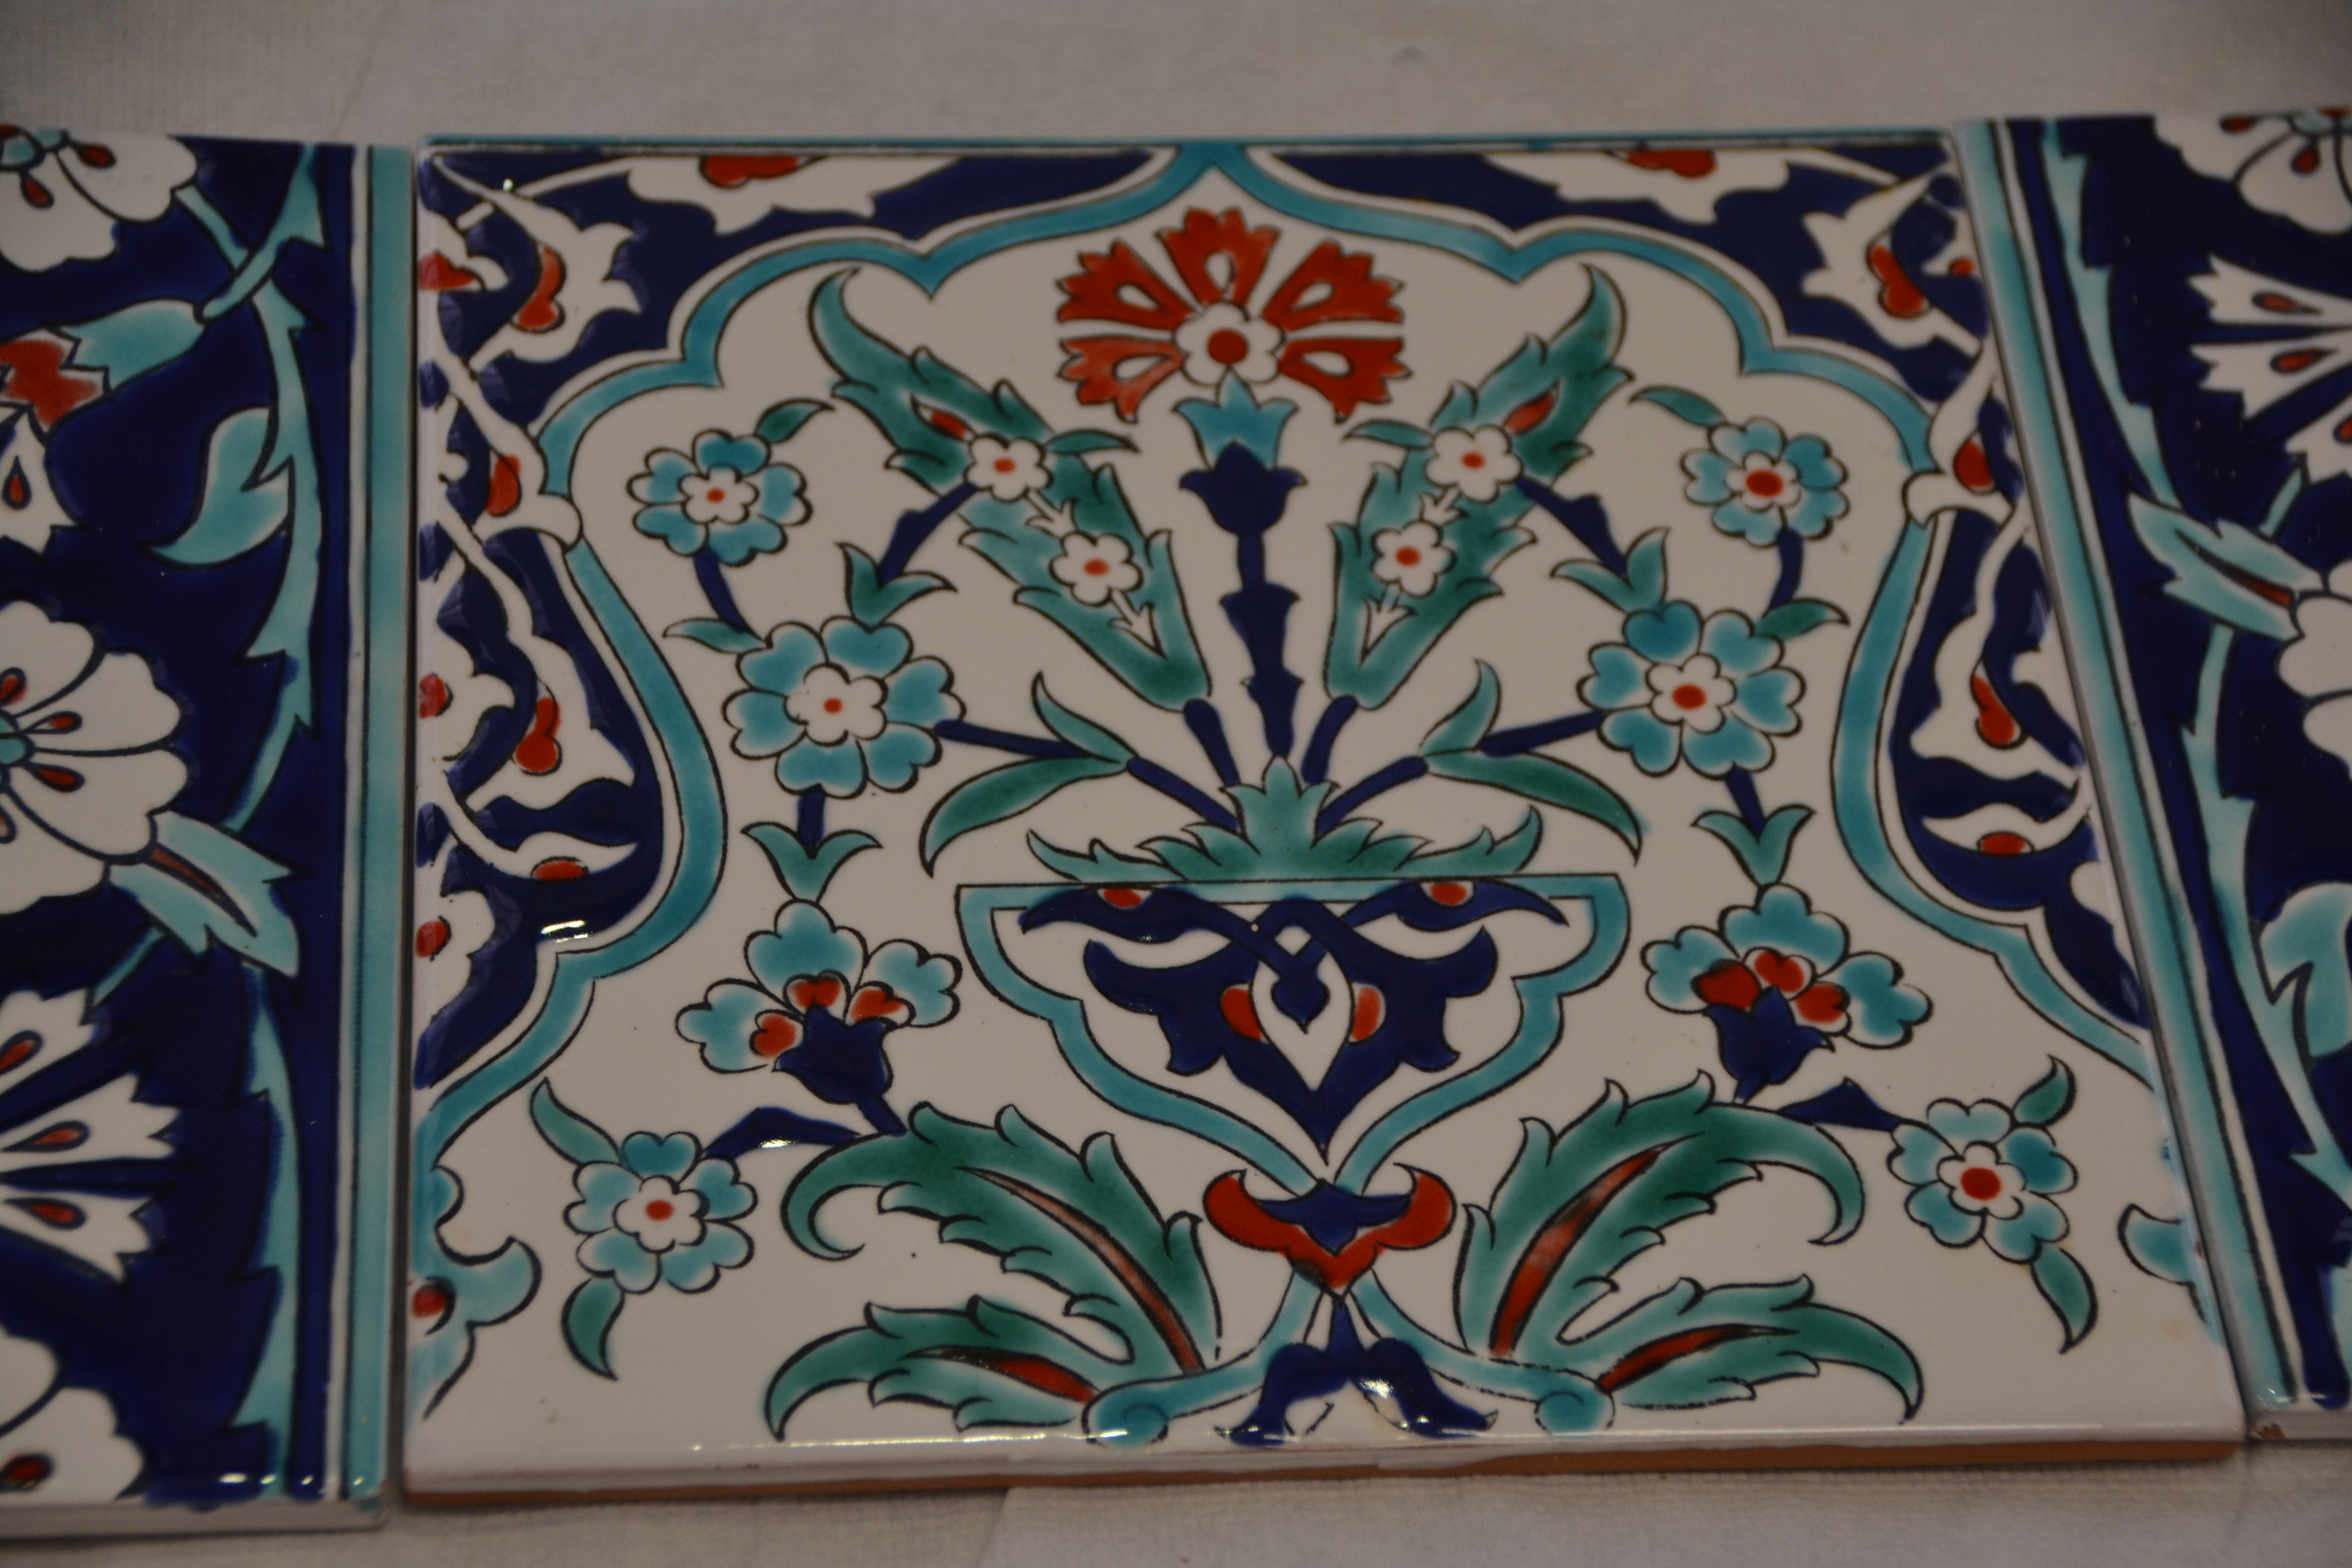 A delicate hand-painted tile.